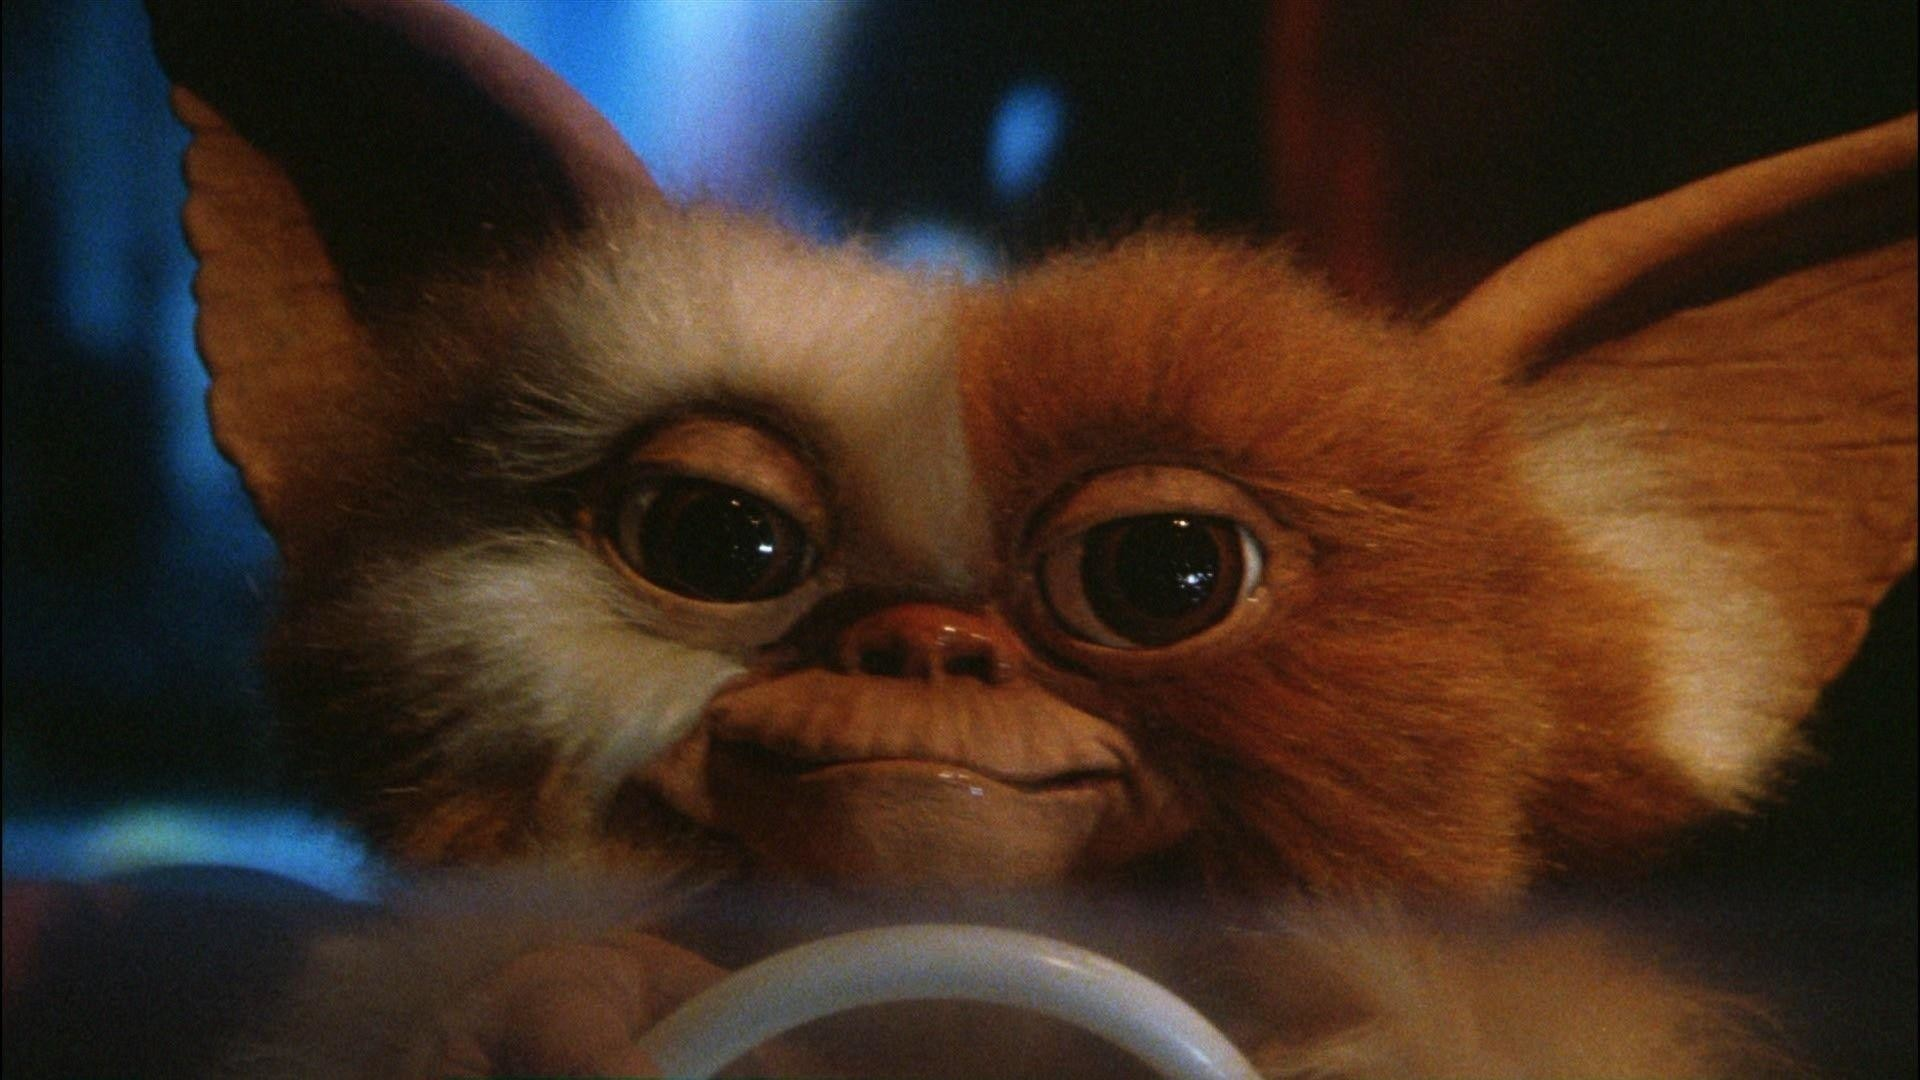 Res: 1920x1080, Gremlins Gizmo | Reviews & Ratings | Cheats & Discussion | Epicbuzz